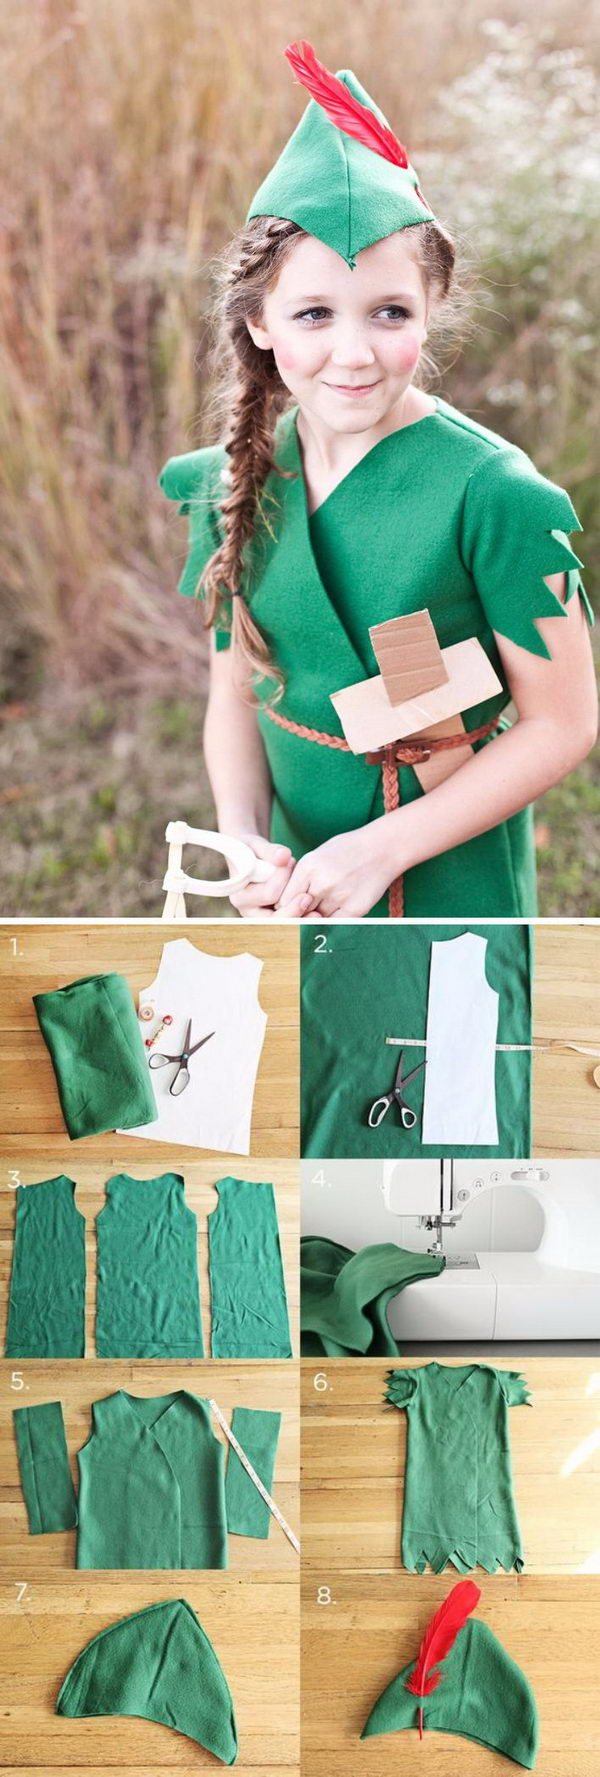 DIY Peter Pan Costume  sc 1 st  Styletic & 30+ Cool Peter Pan and Tinkerbell Costumes